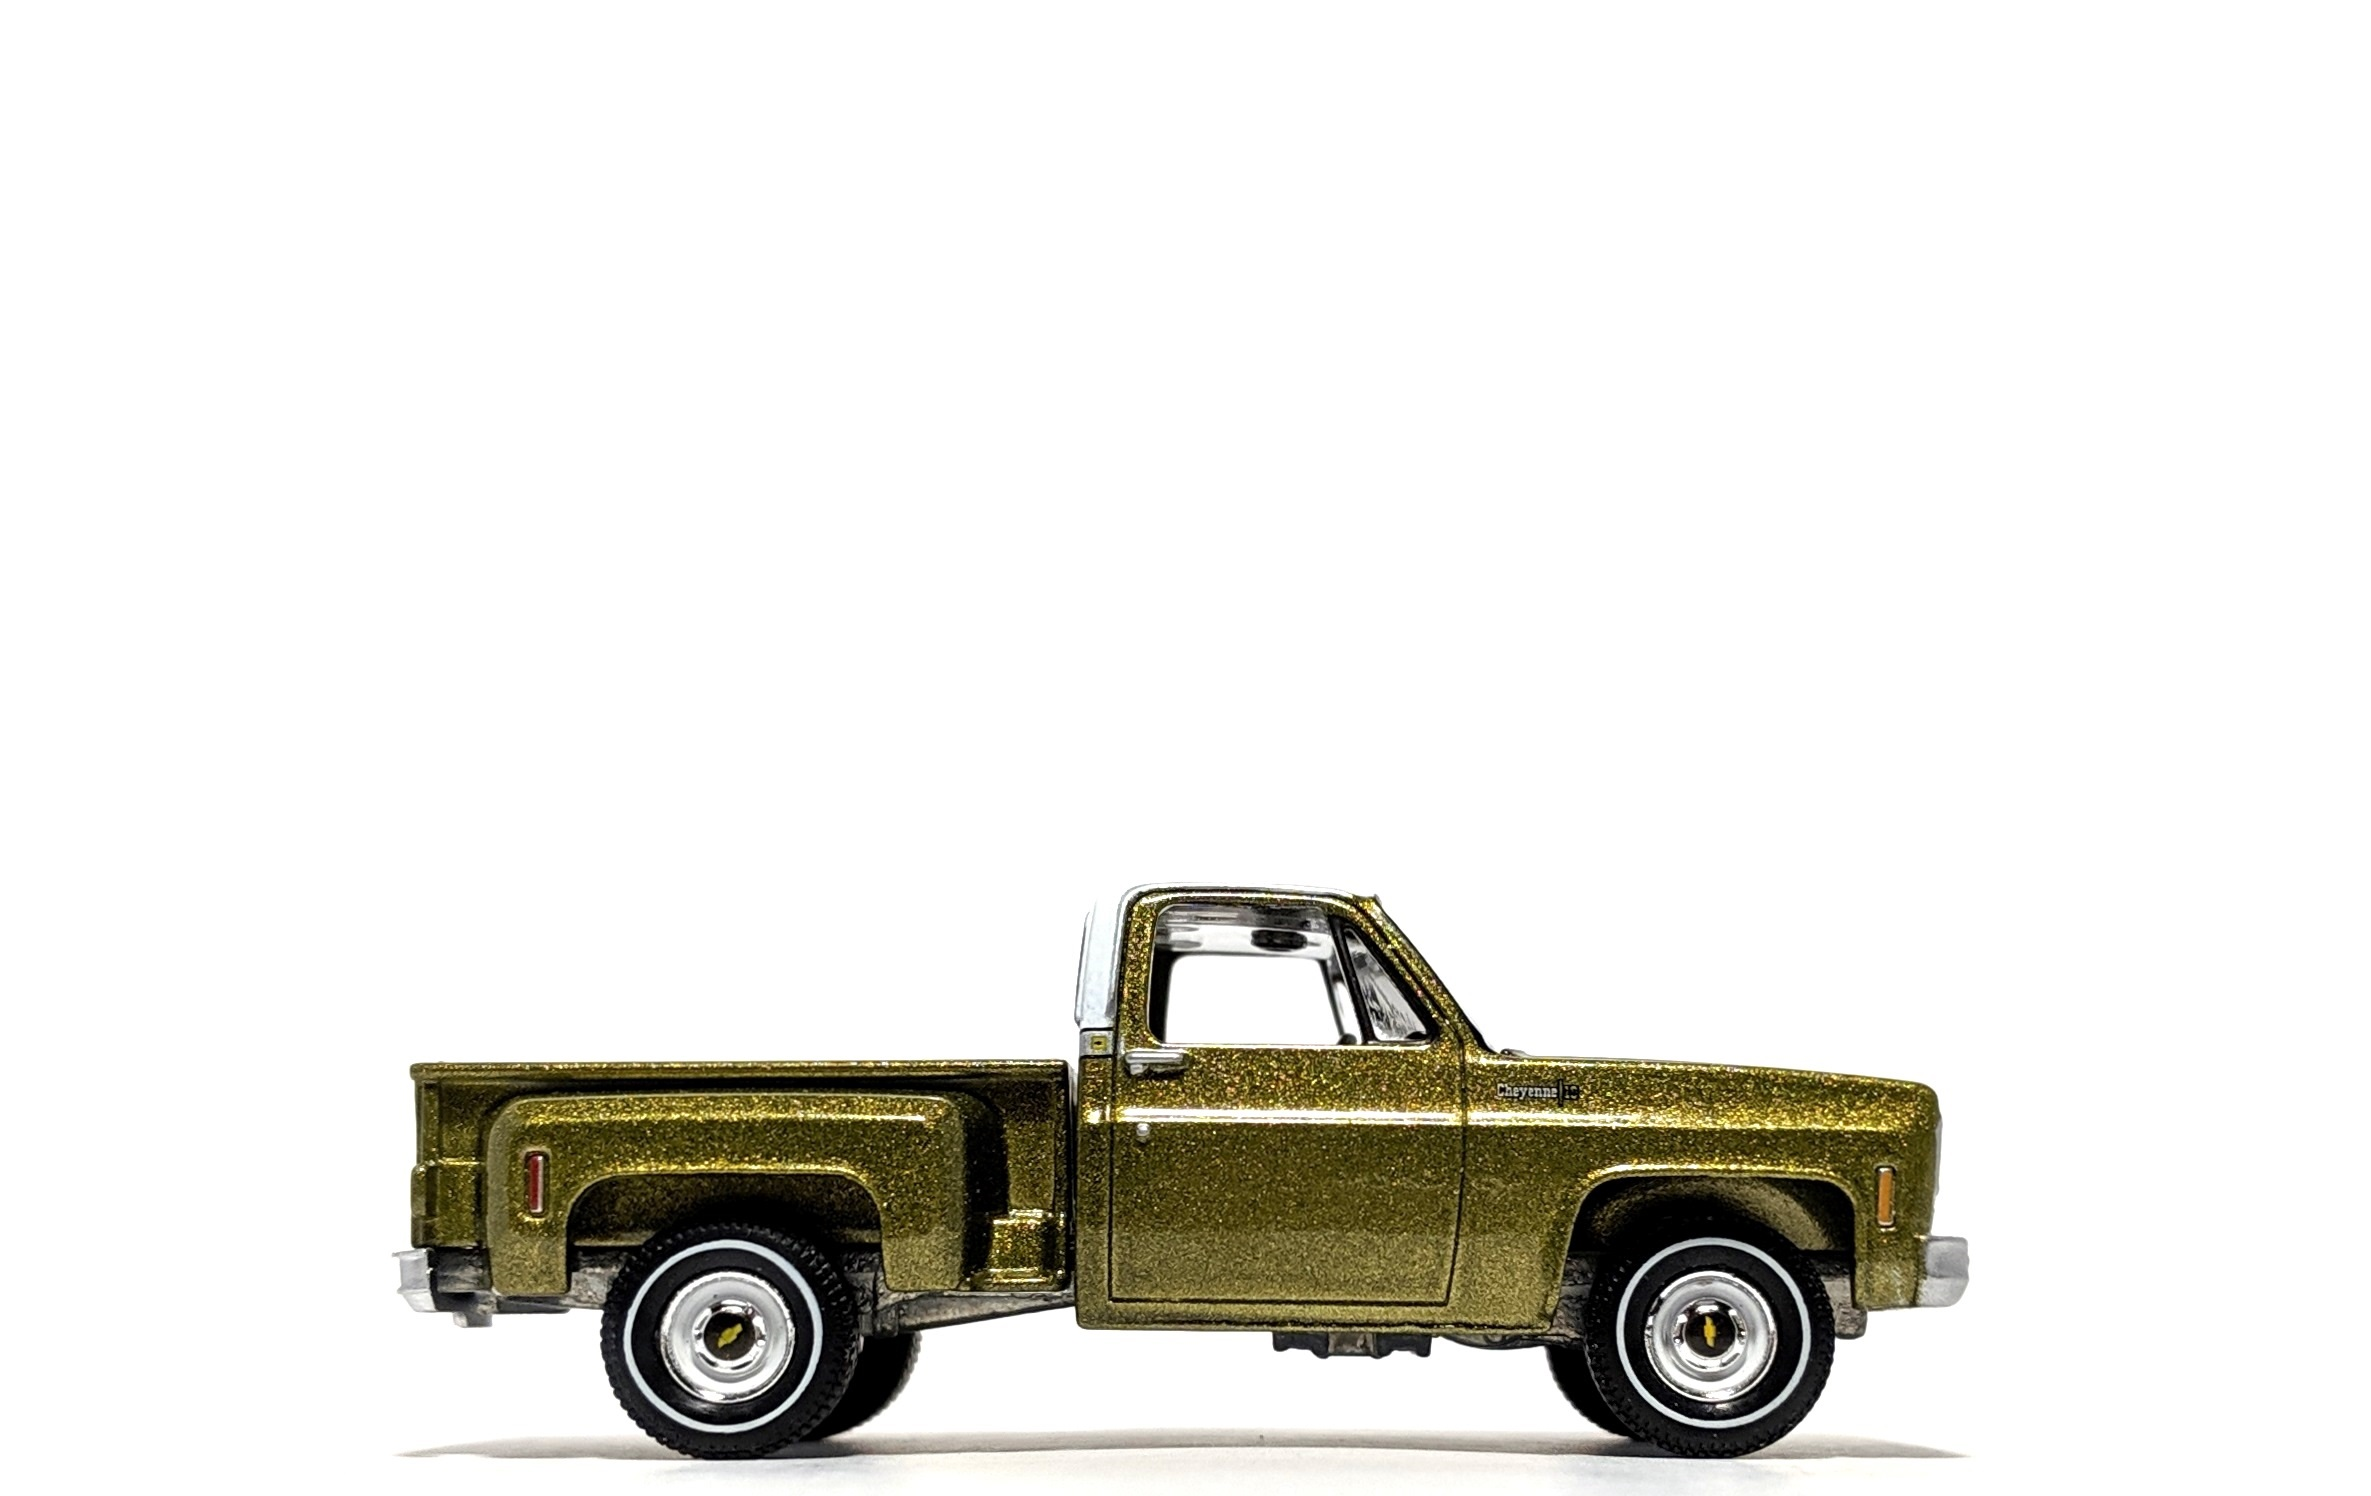 1973 Chevrolet Cheyenne Stepside Lime Green Metallic - Auto World